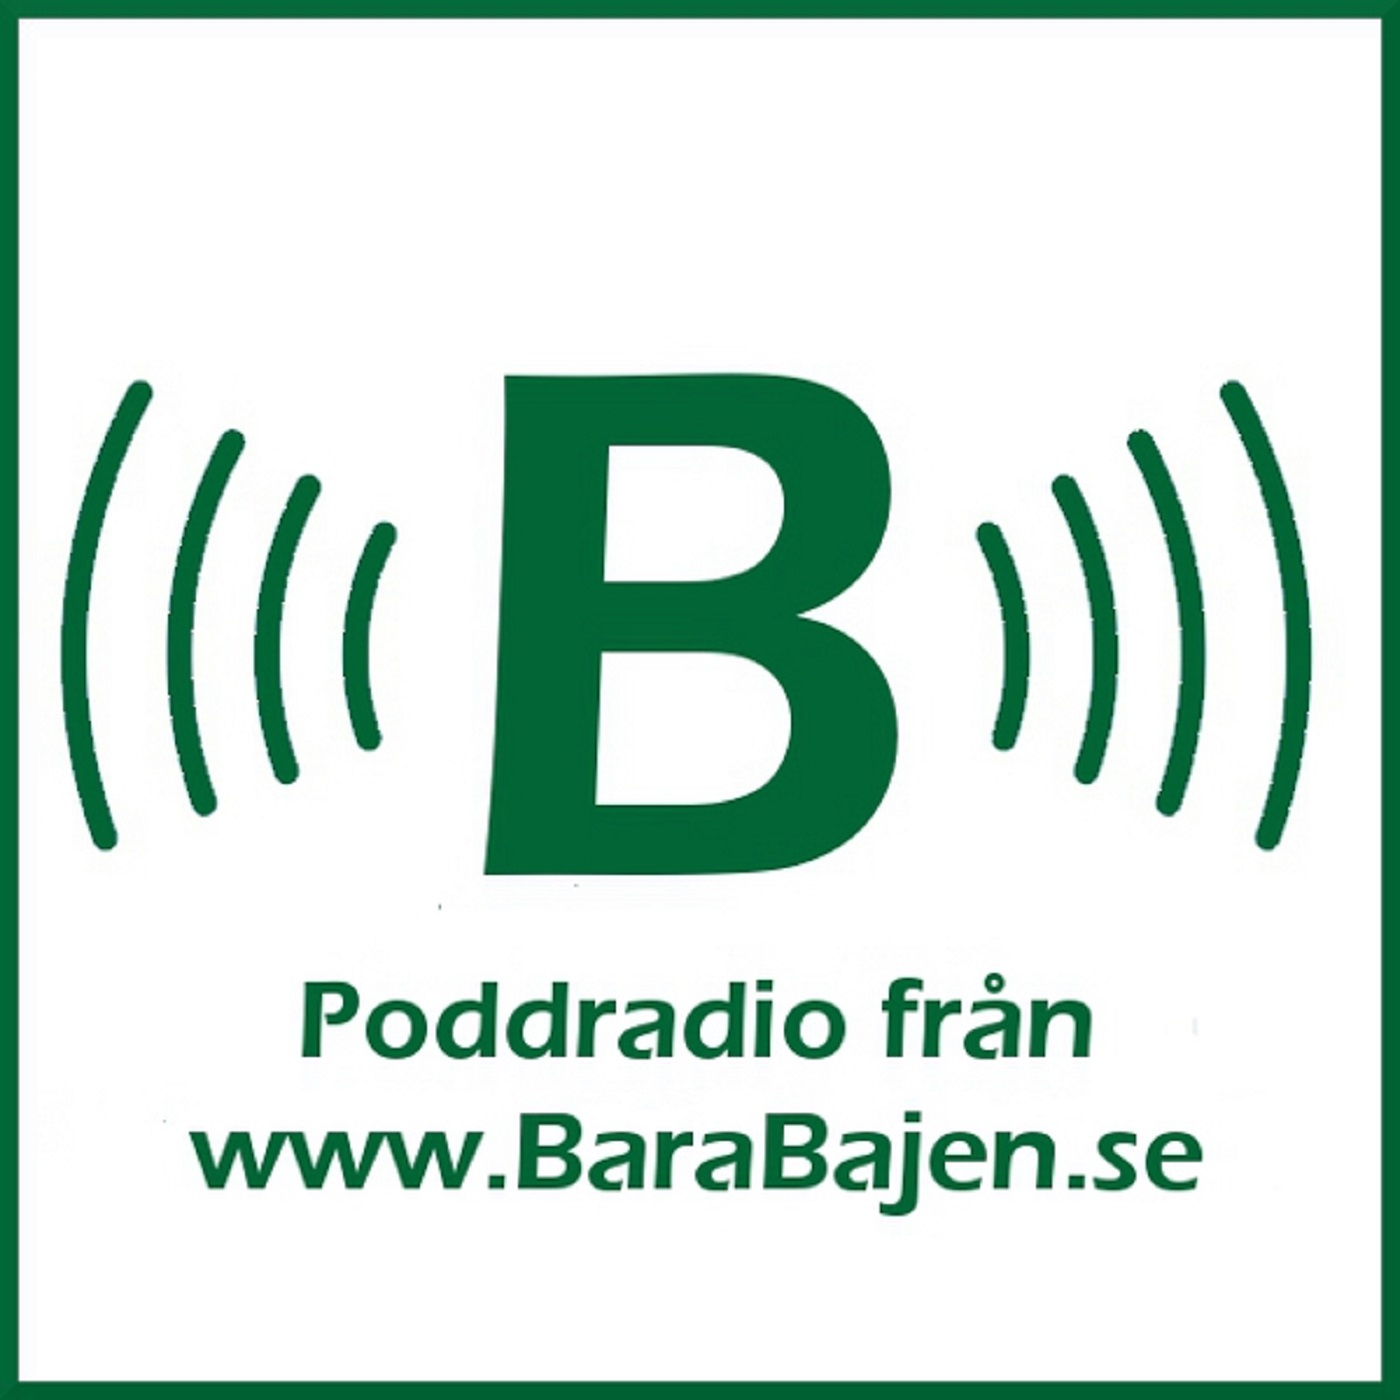 BaraBajensPoddradio